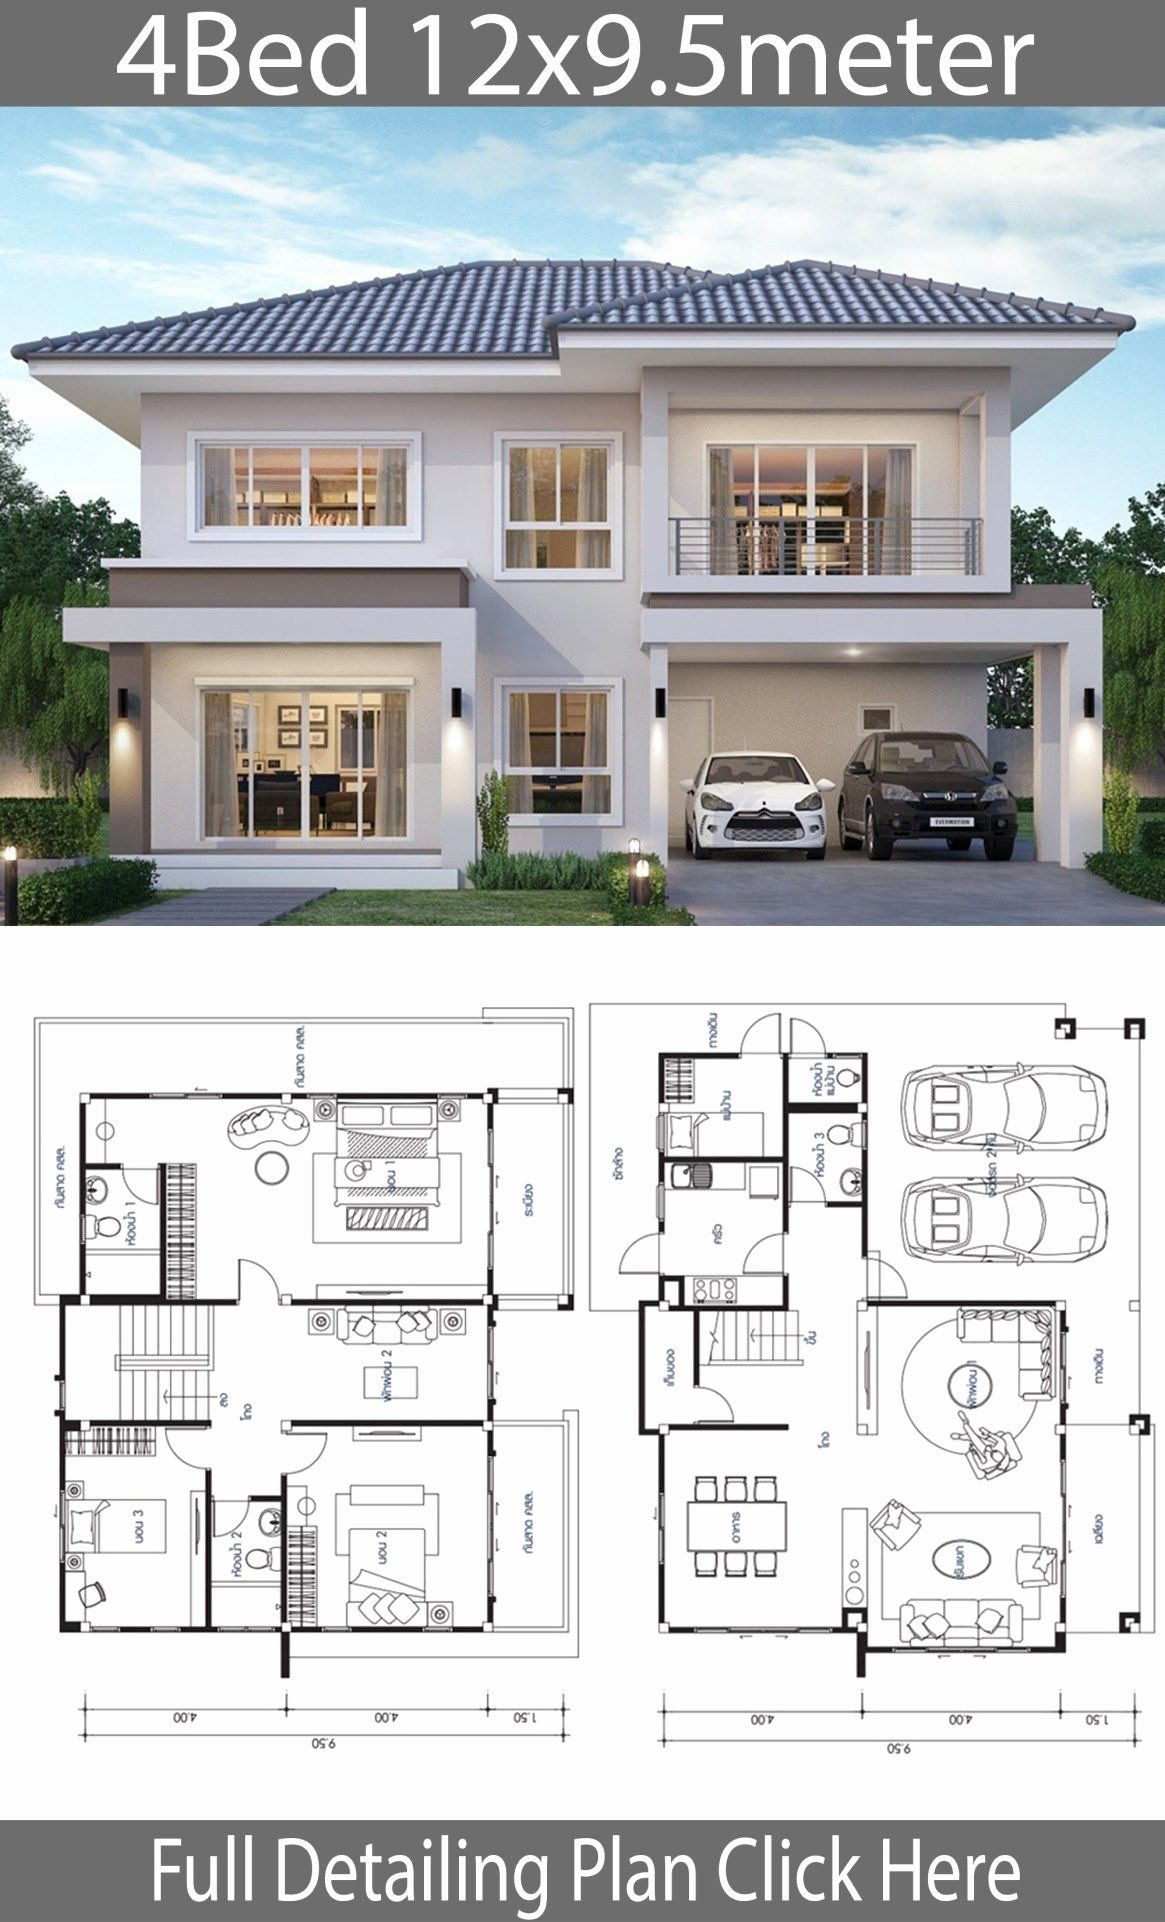 Sims 4 Modern House Ideas Inspirational House Design Plan 12 9 5m With 4 Bedrooms Unt In 2020 2 Storey House Design Architectural House Plans 4 Bedroom House Designs